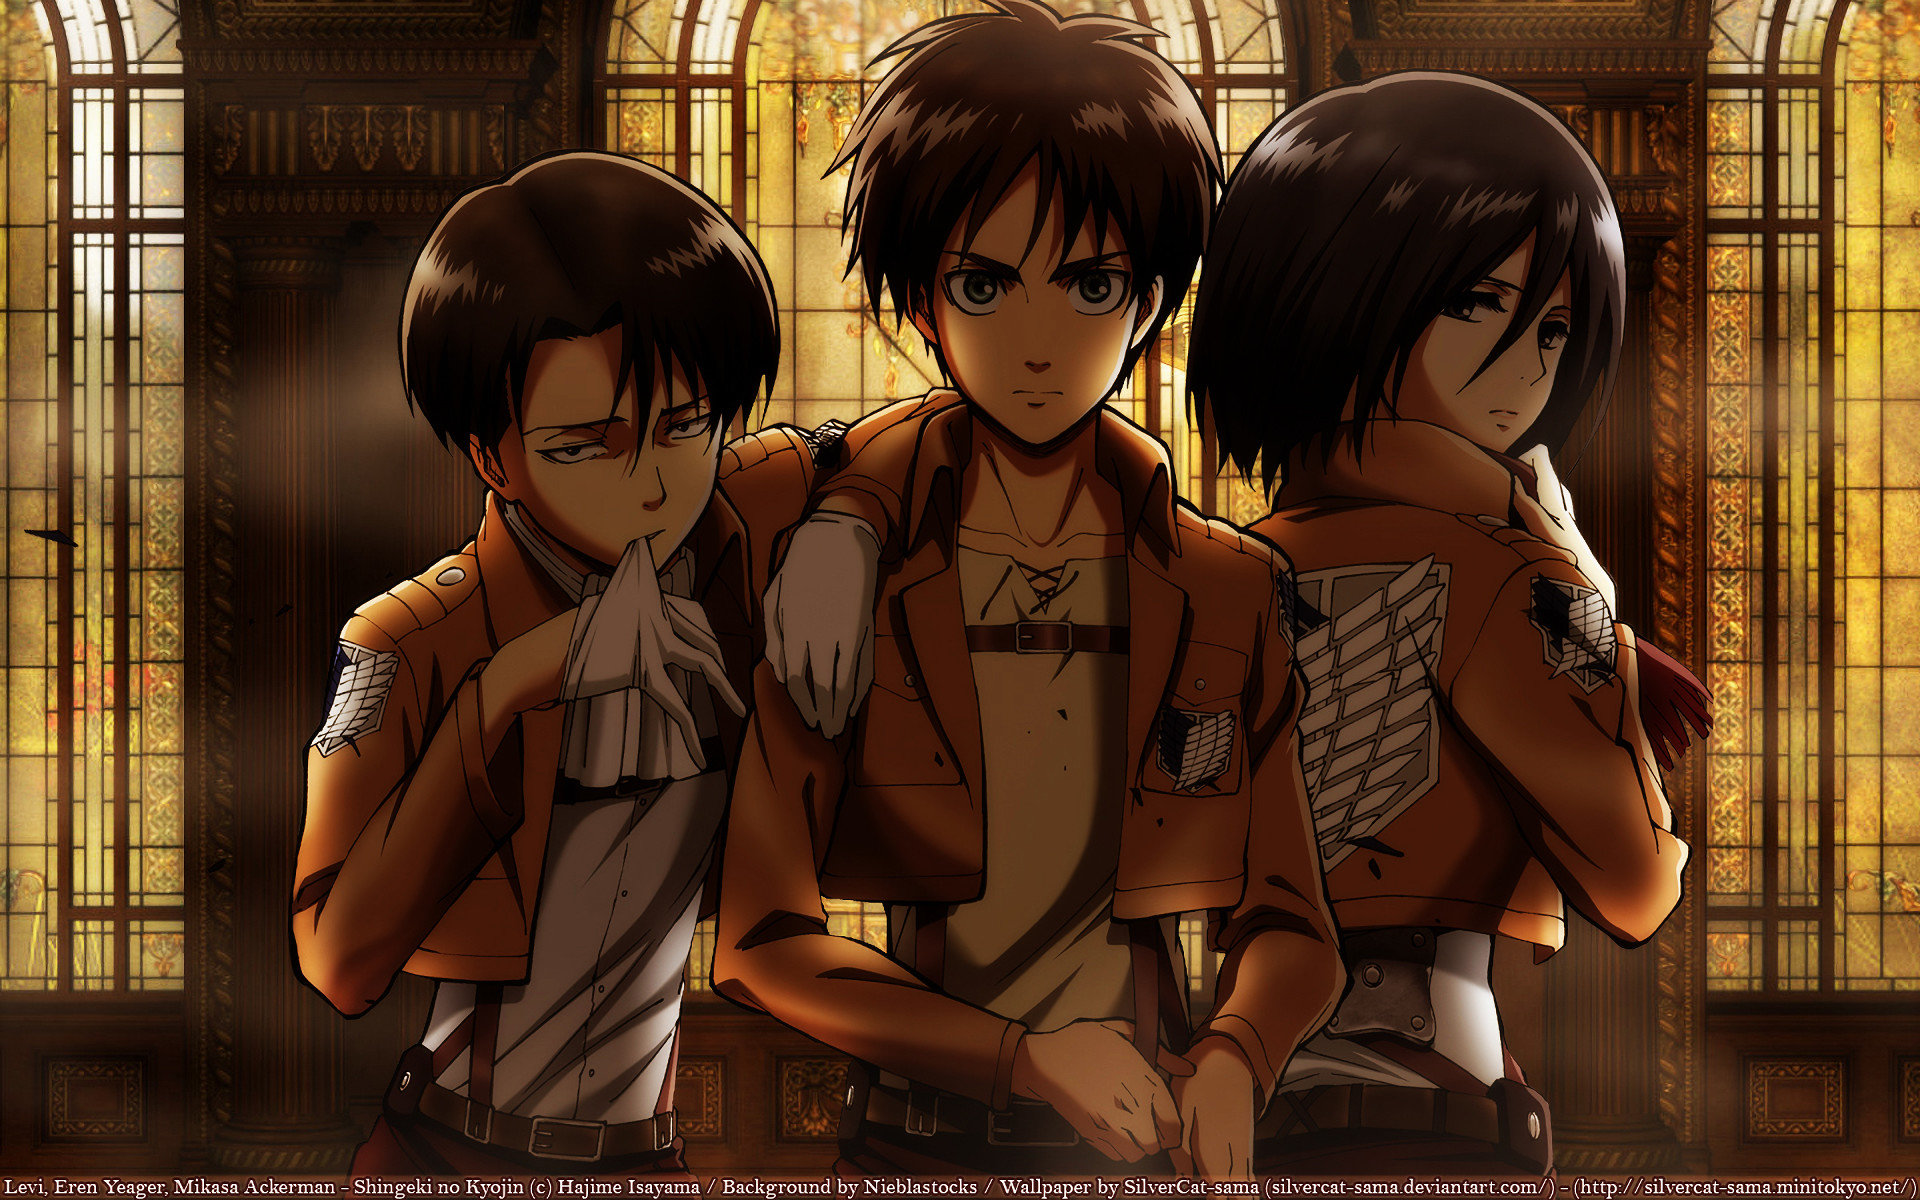 Download Hd 1920x1200 Attack On Titan Computer Background Id 207001 For Free